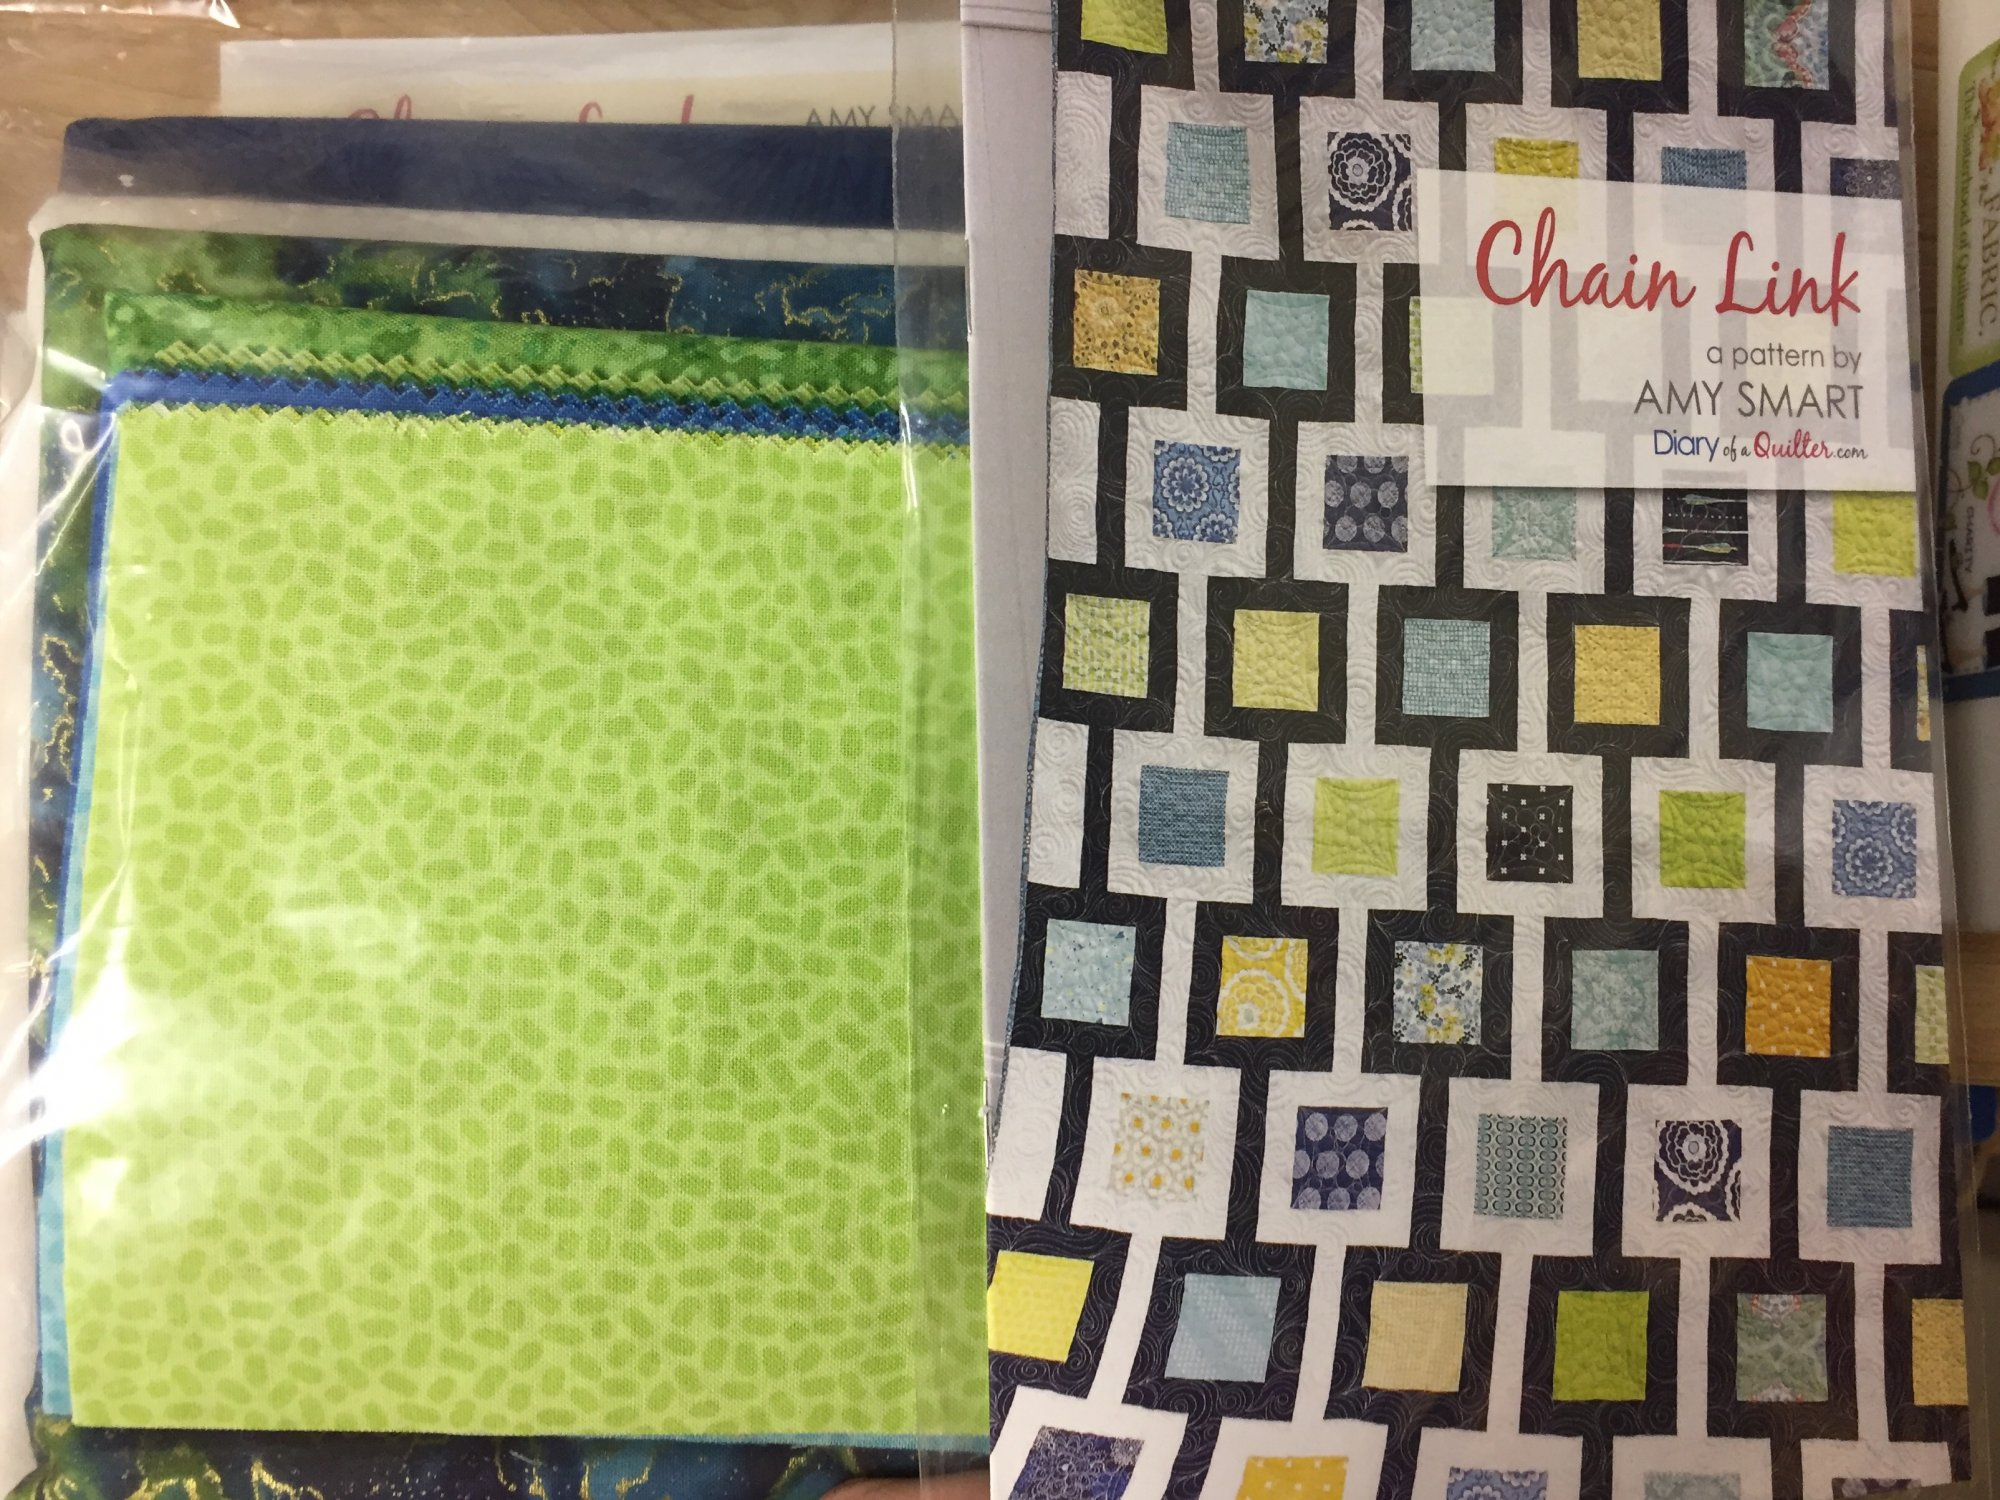 Chain Link By Amy Smart Kit